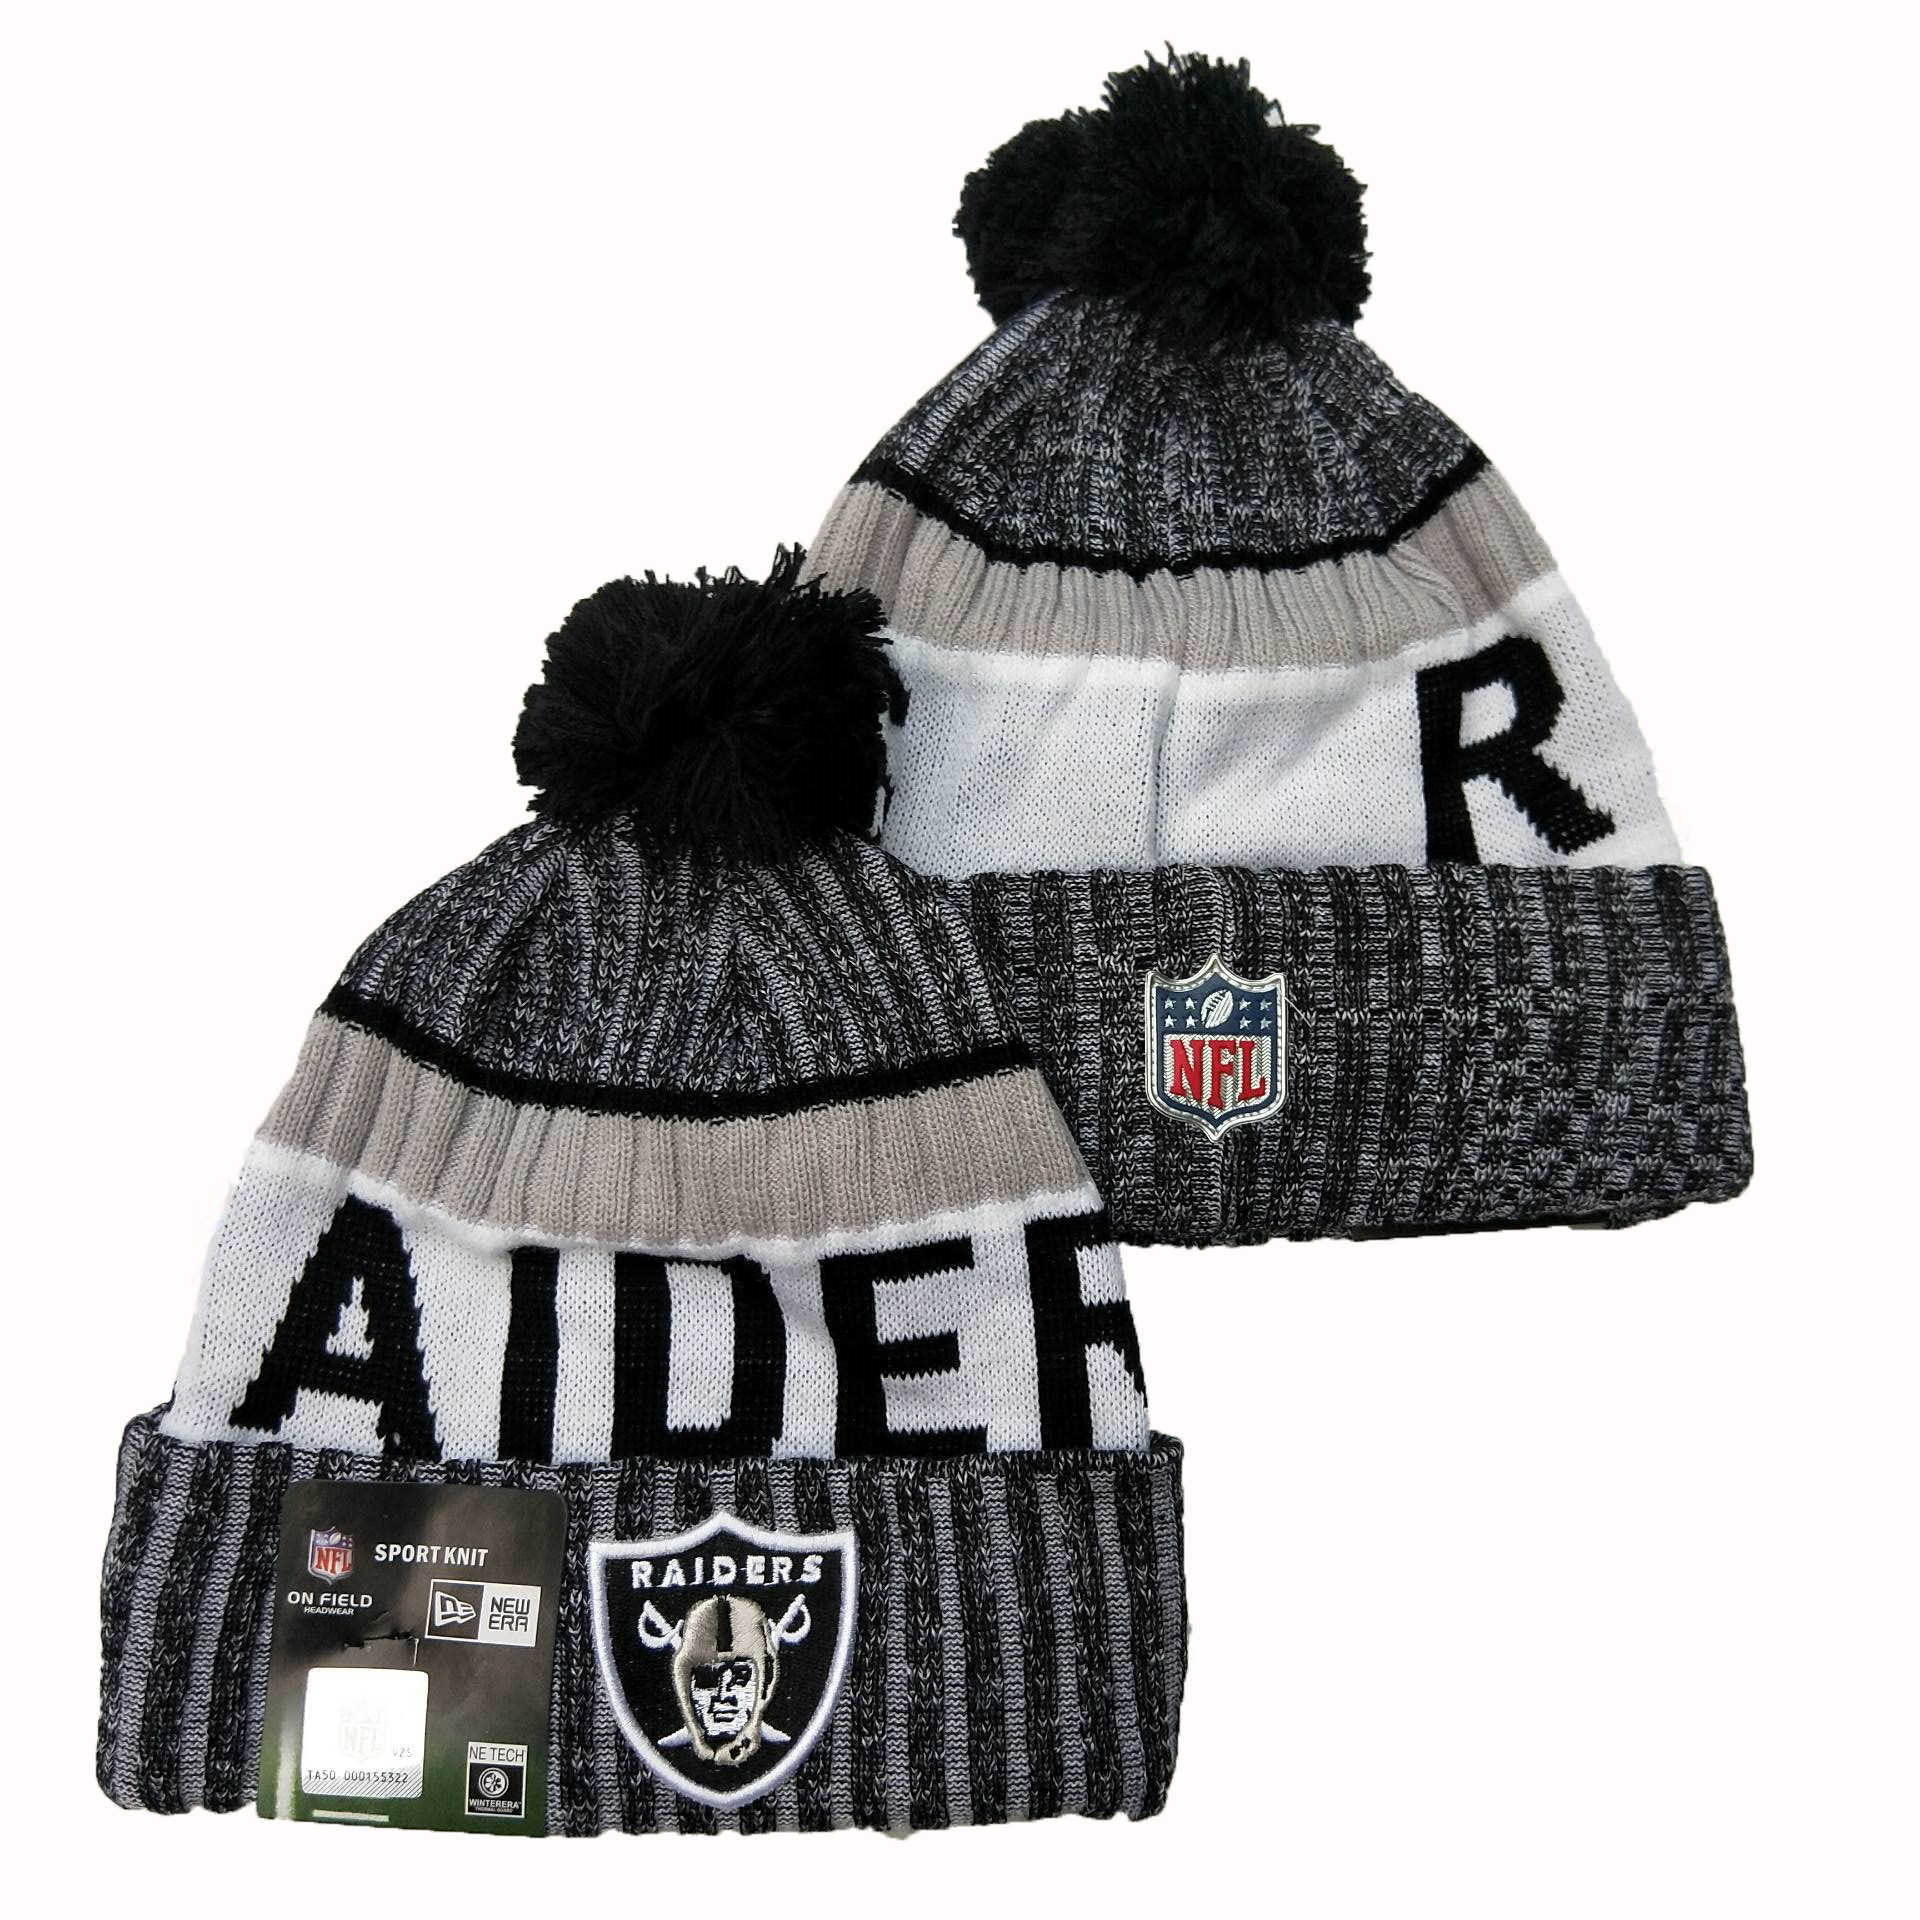 Las Vegas Raiders Knit Hats 066